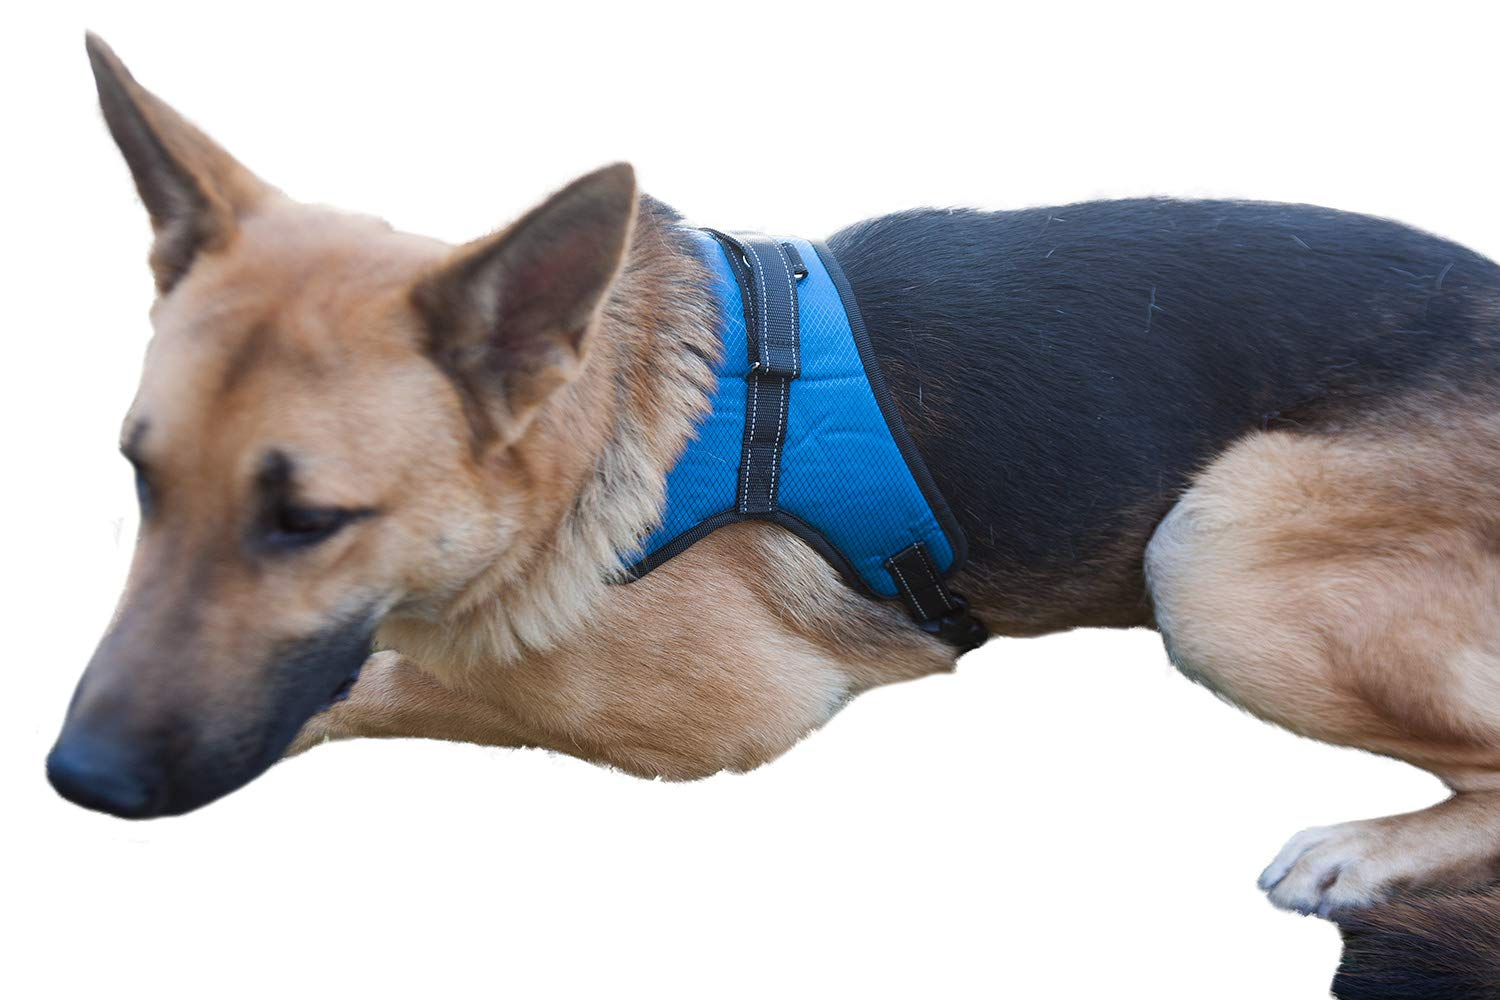 2PET Dog Harness No Pull Dog Harness Ideal for Walking, Service Dogs, Training, Hiking | Safety Padded Mesh Reflective Straps - XLarge Blue